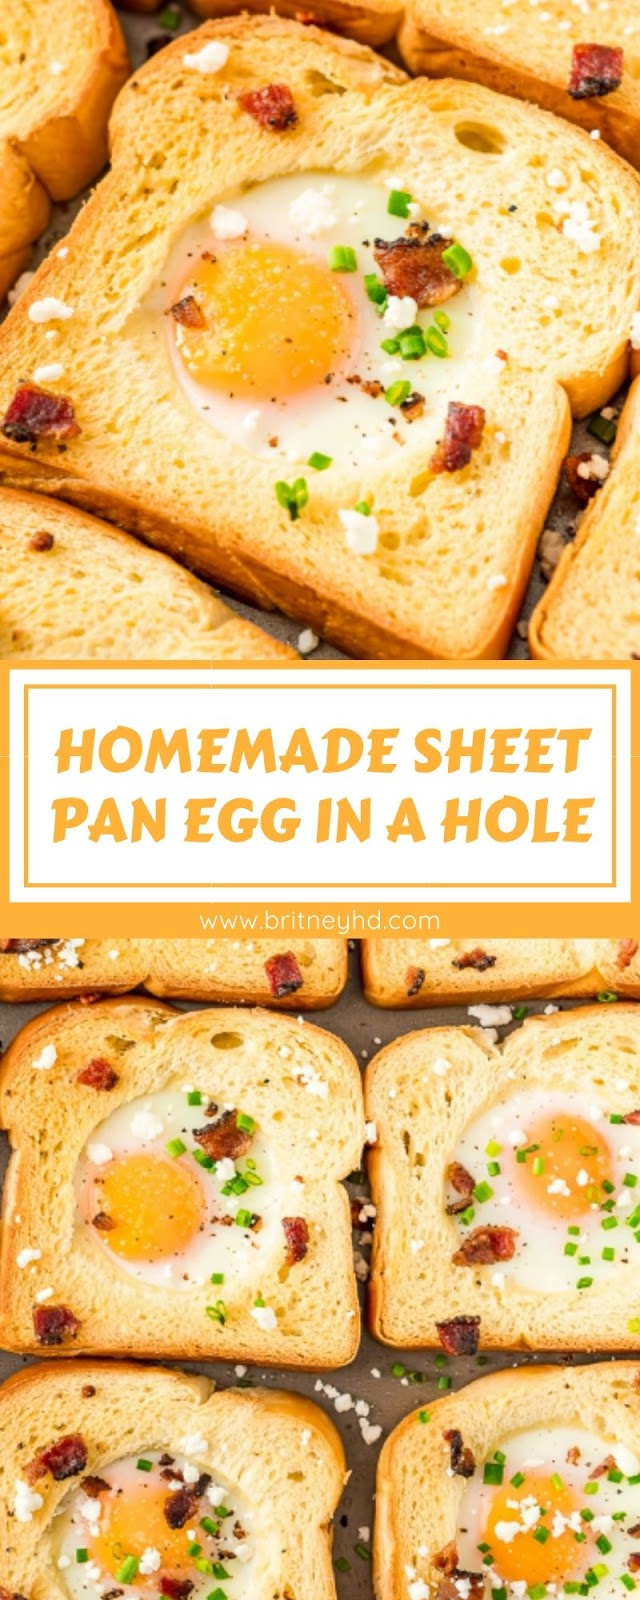 HOMEMADE SHEET PAN EGG IN A HOLE